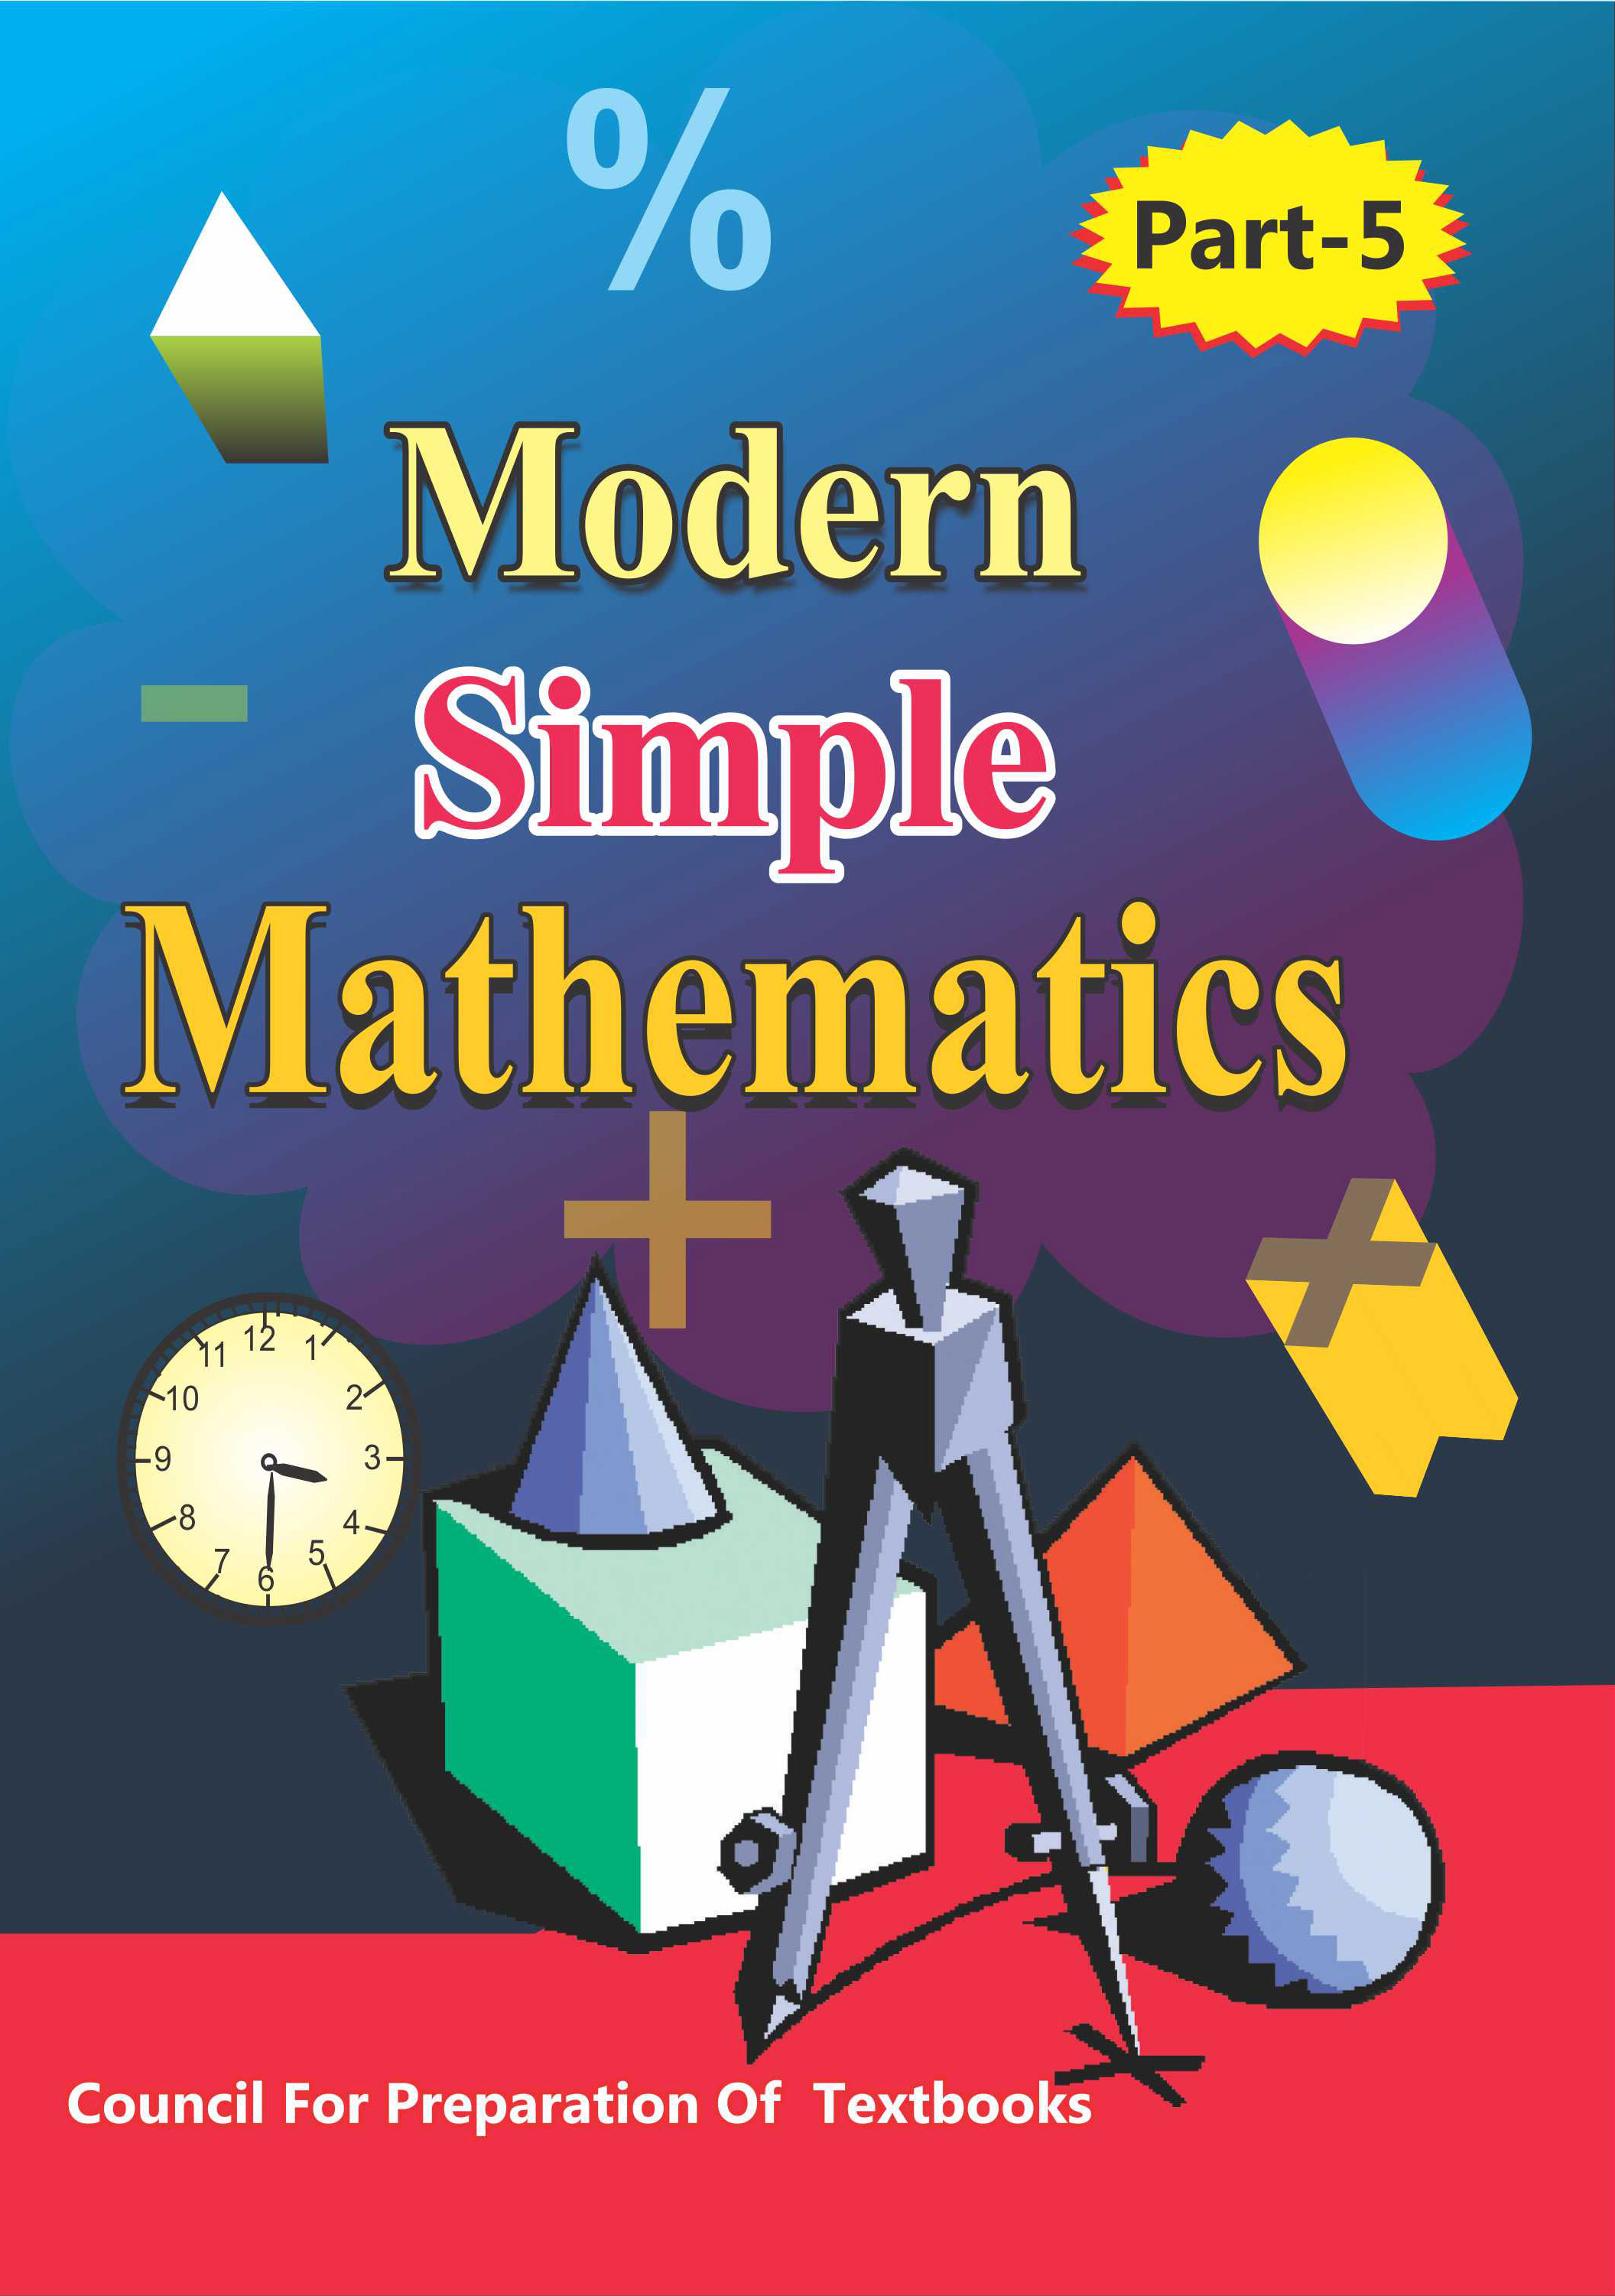 Modern Simple Mathematics Part-5